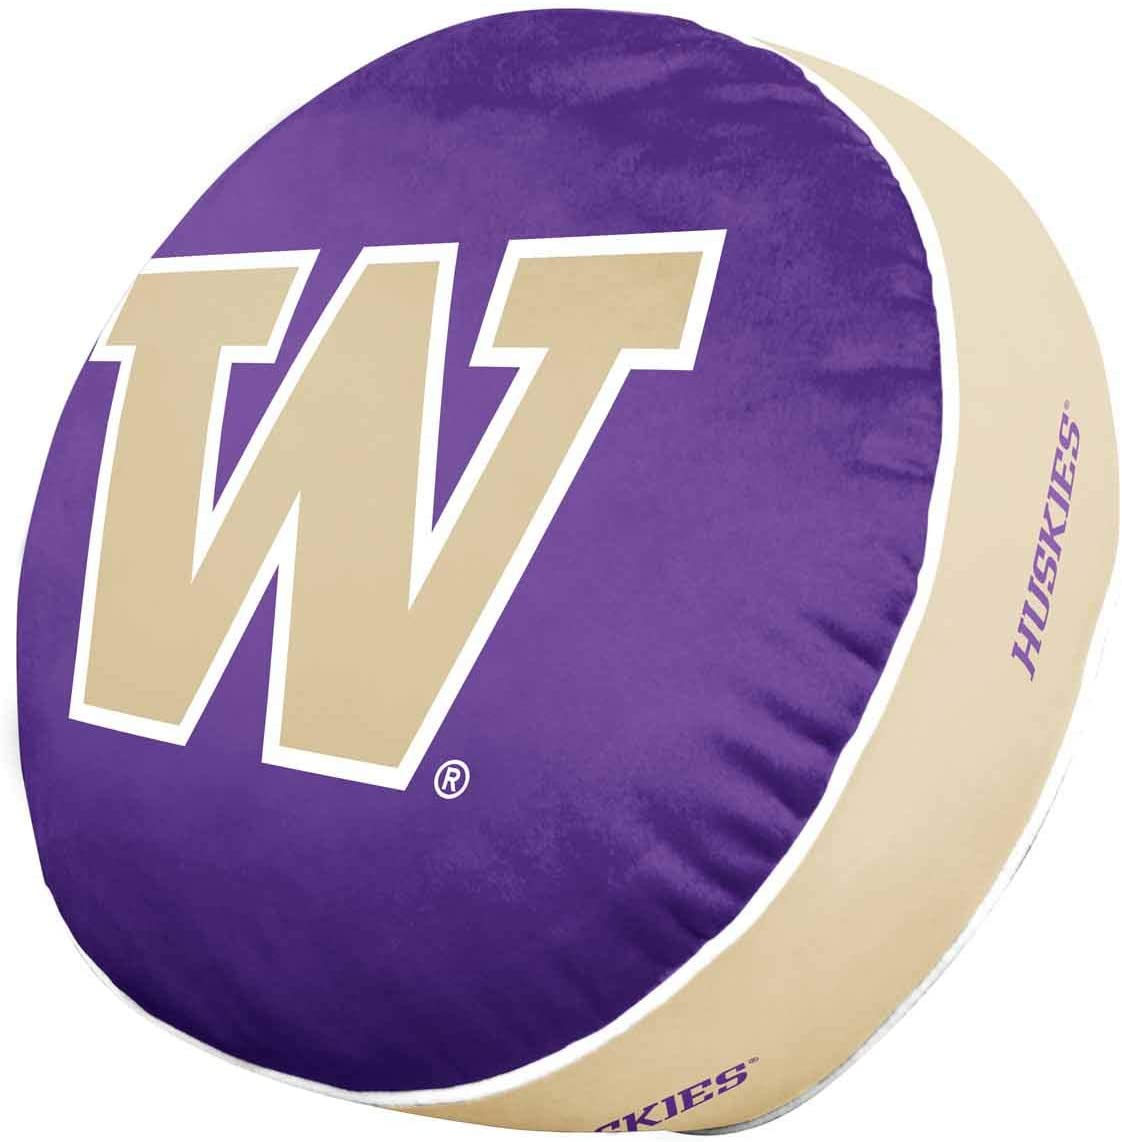 Campus Colors gift Team Logo Factory outlet 15 Inch Stretch Ultra Plush Pillow Soft